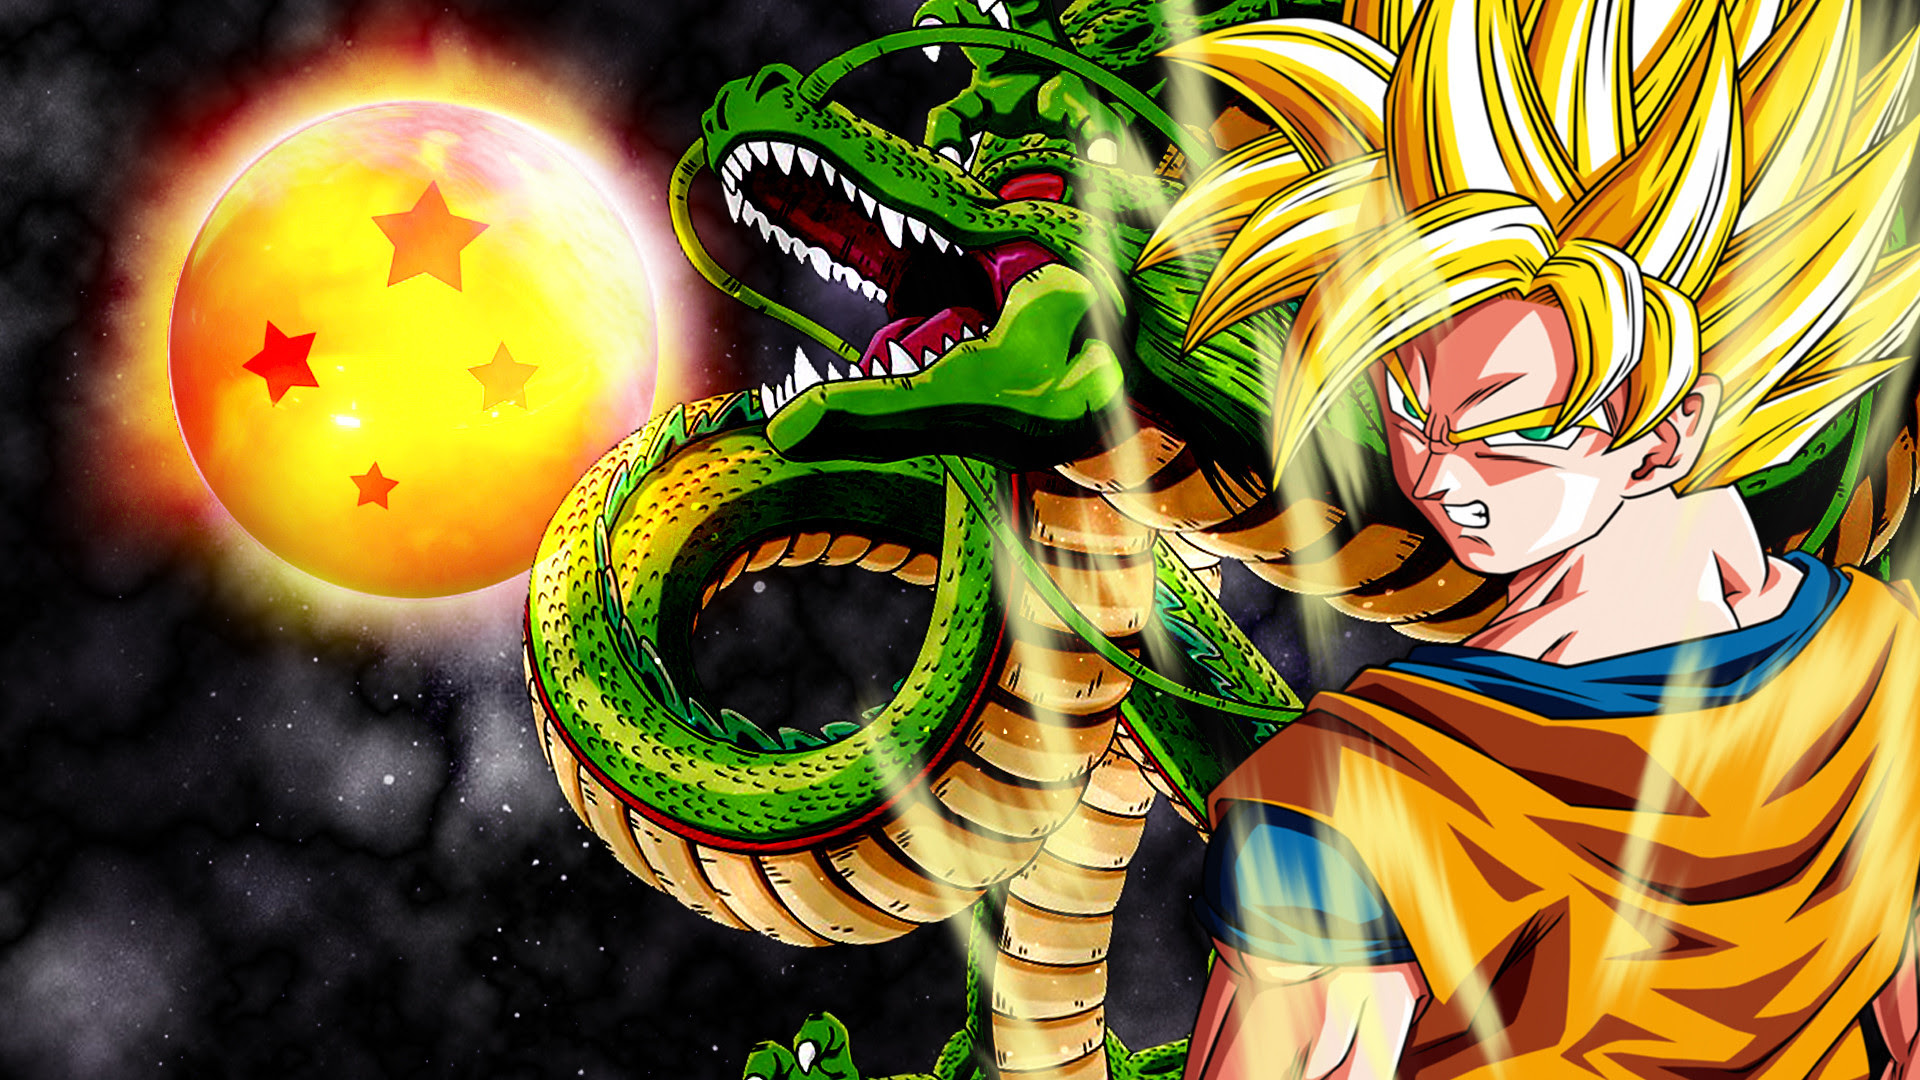 Dragon Ball Z Wallpaper Hd 69 Images